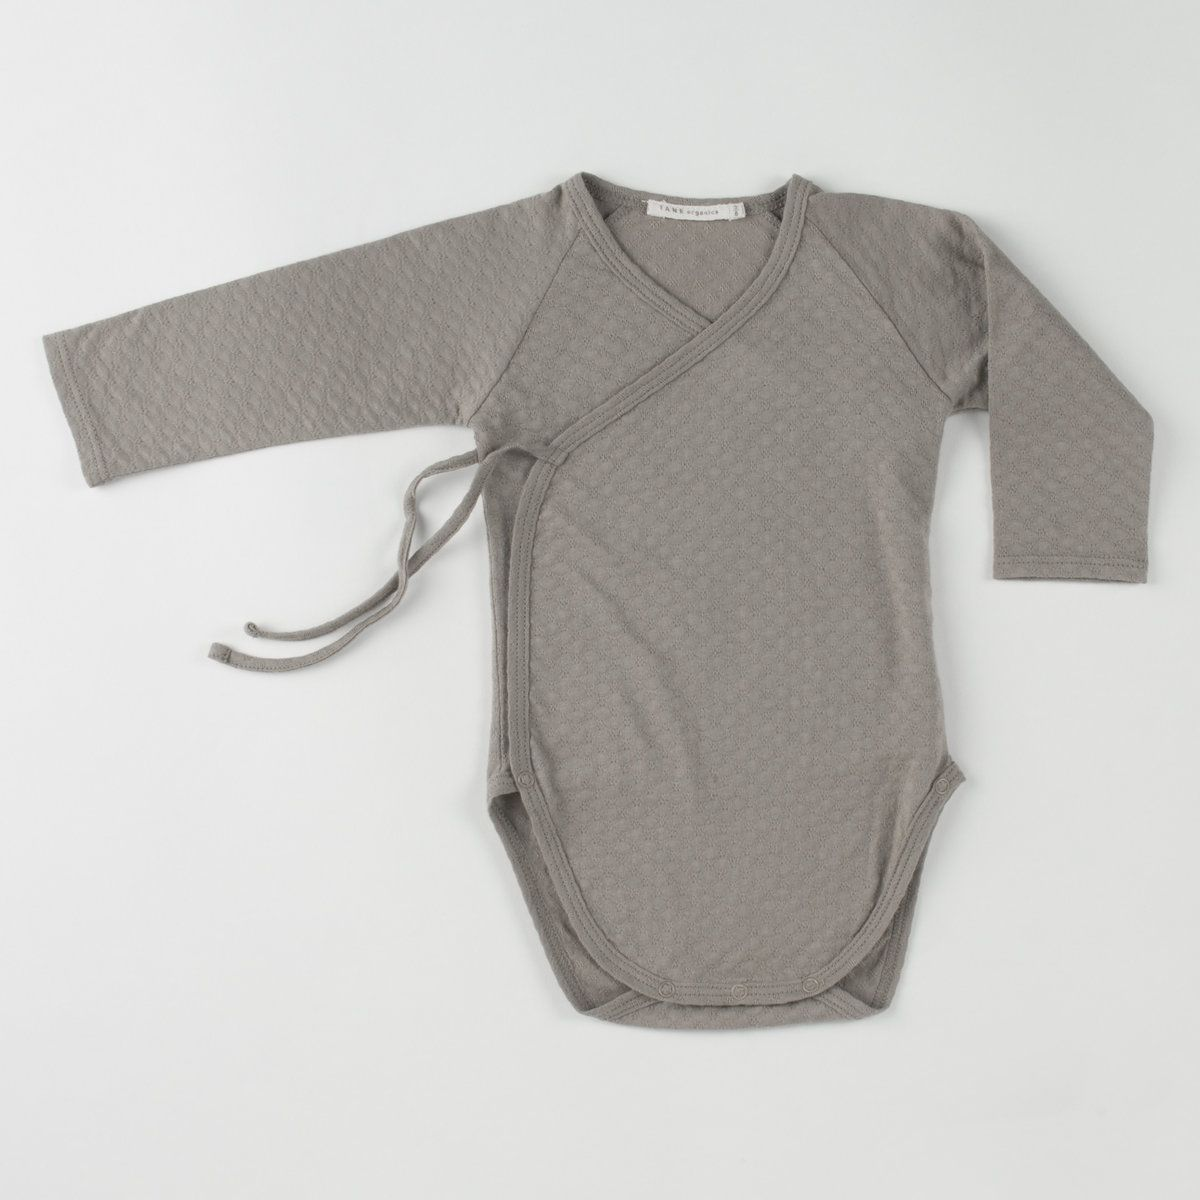 Luxurious Organic Infant And Baby Clothing Onesies Pointelle